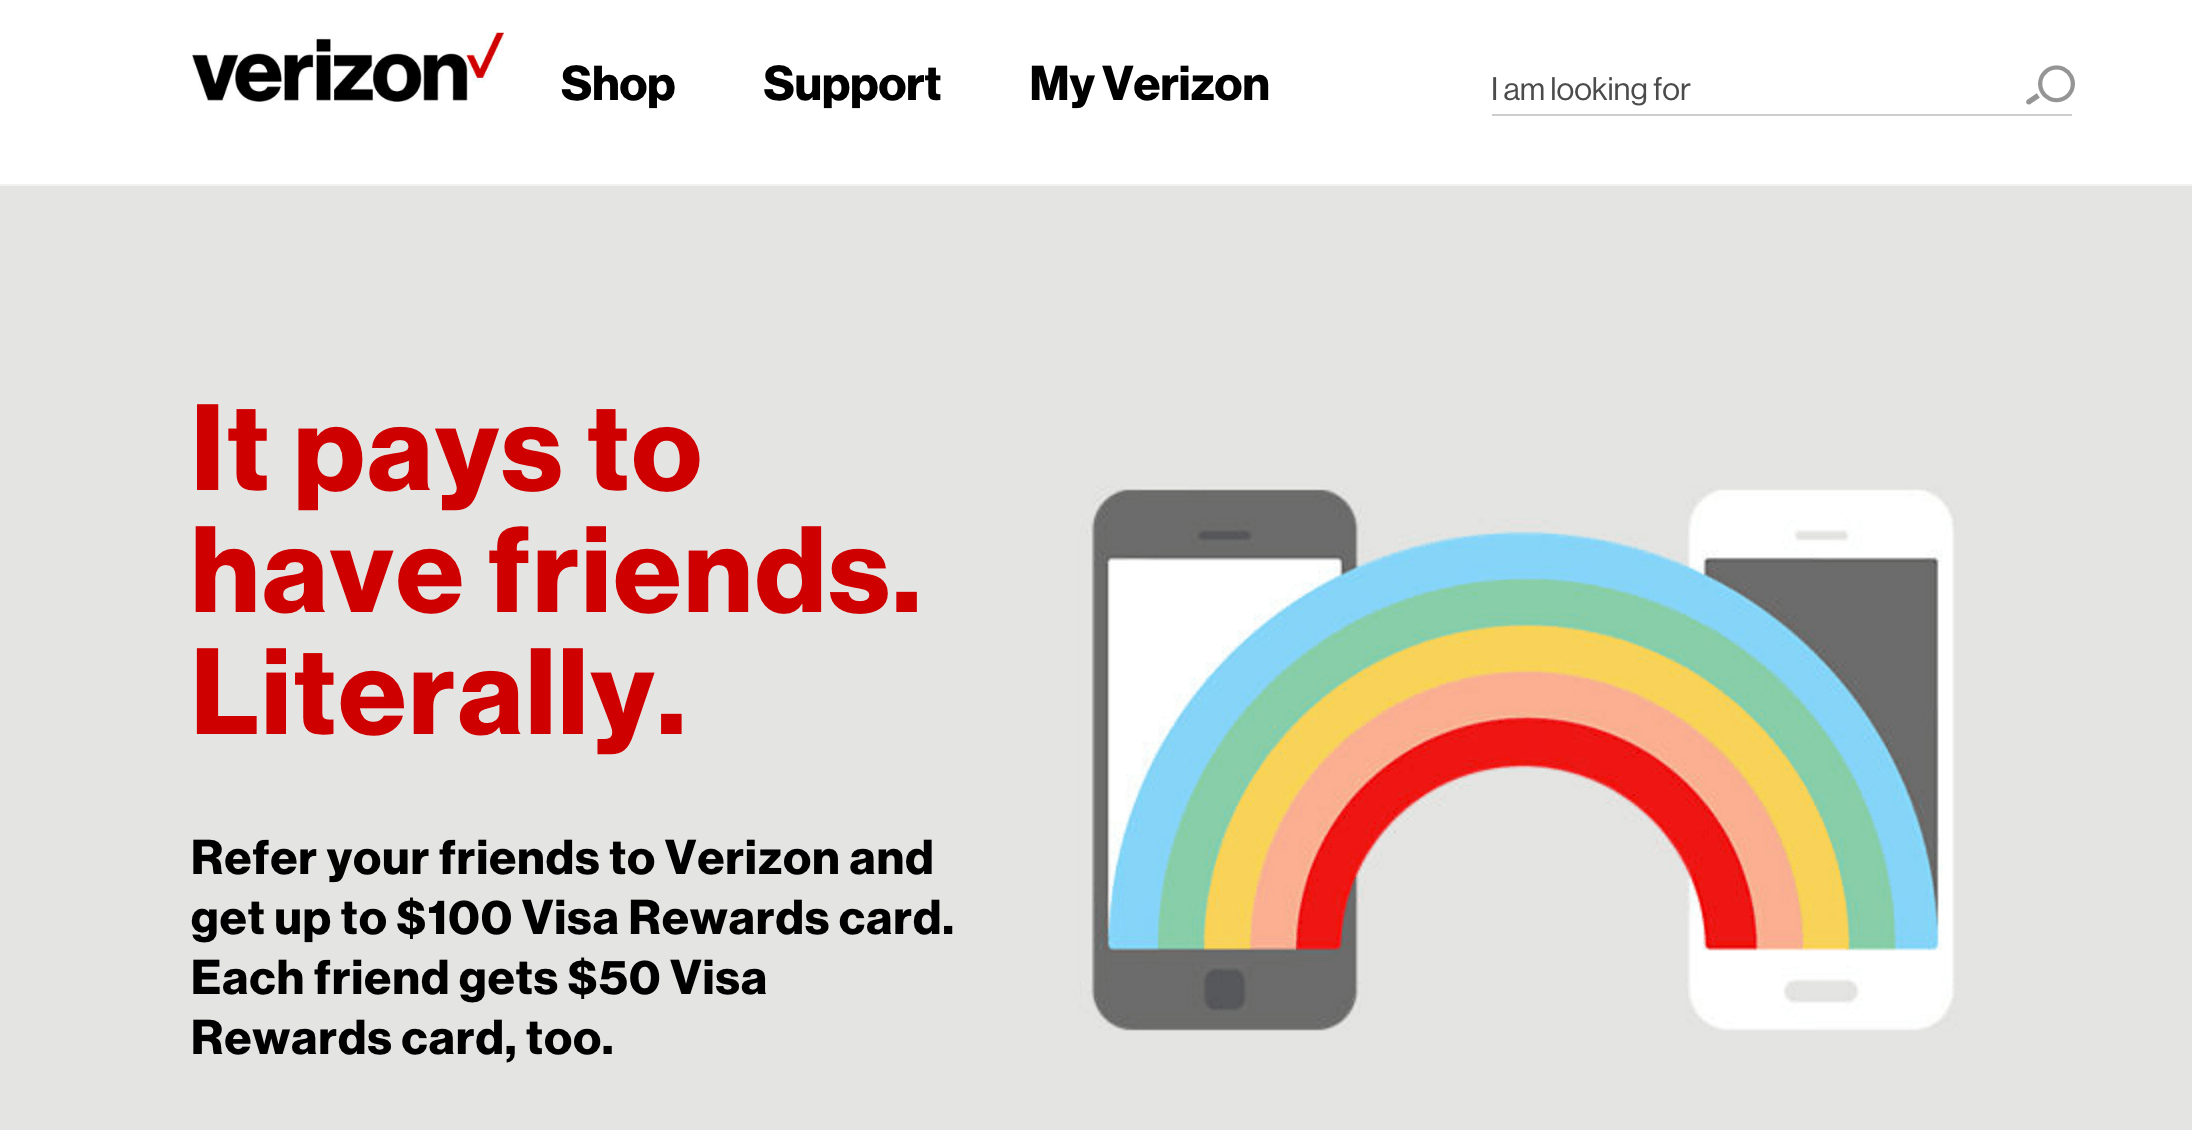 49-verizon-referral-program